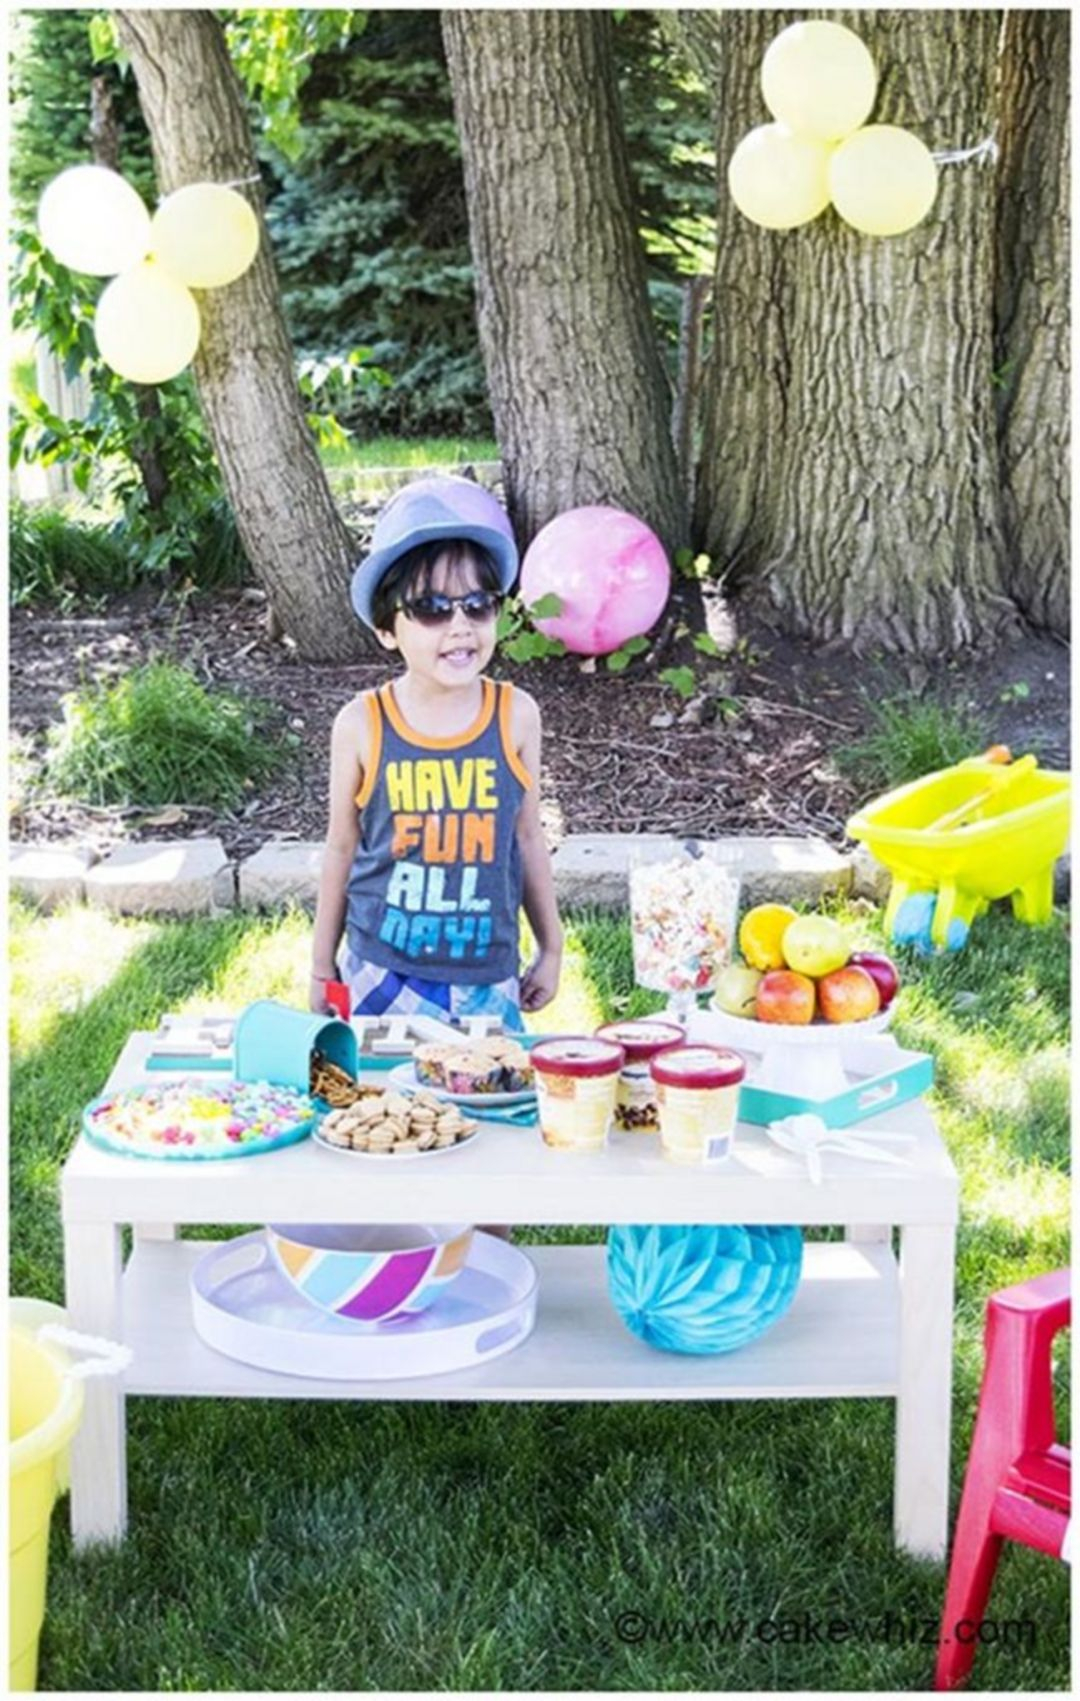 Backyard Kids Summer Party Ideas Awesome Indoor Outdoor for 12 Some of the Coolest Designs of How to Build Backyard Party Ideas For Kids